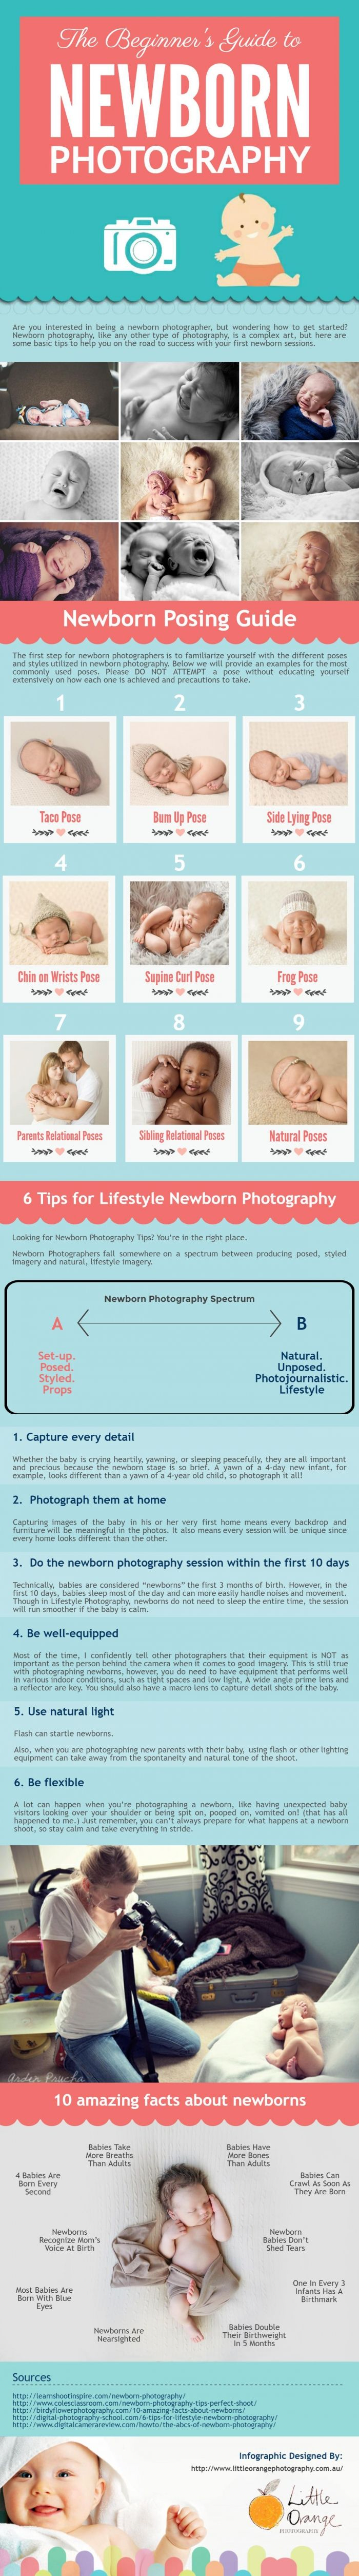 If you39re new to photography check out this infographic for newborn photography ideas the beginners guide to newborn photography The...